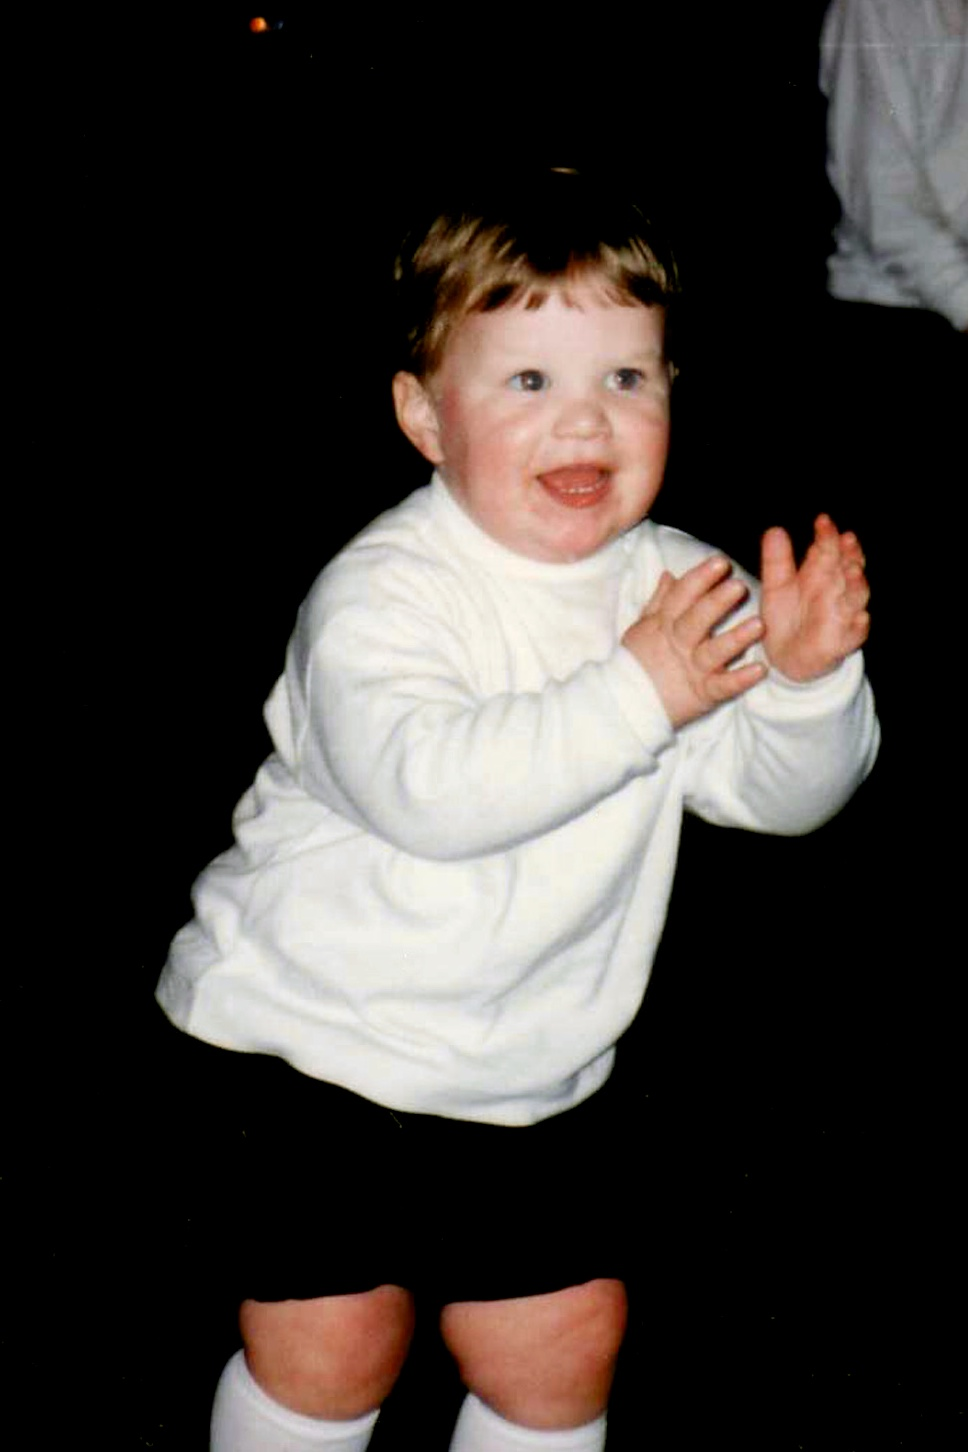 Drew dancing at (almost) 2 years old, in 1993.